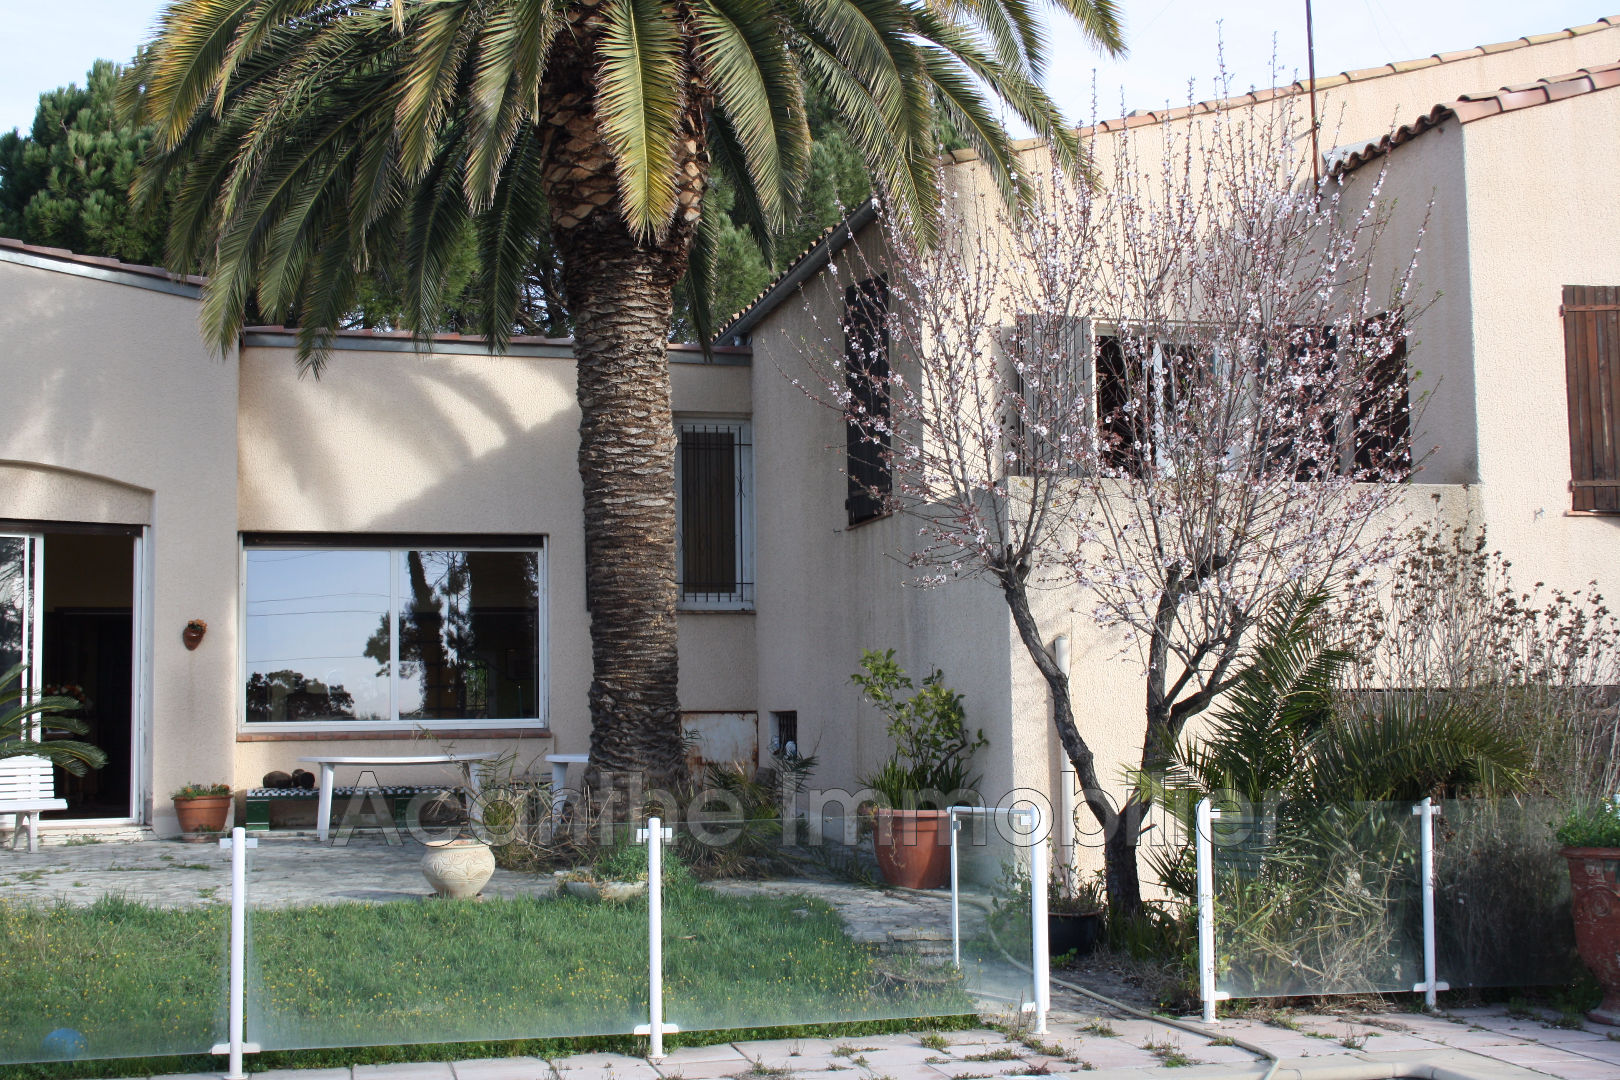 For Sale House   Montpellier (34070)   Ref. 255V4537M   Mandat: 2633